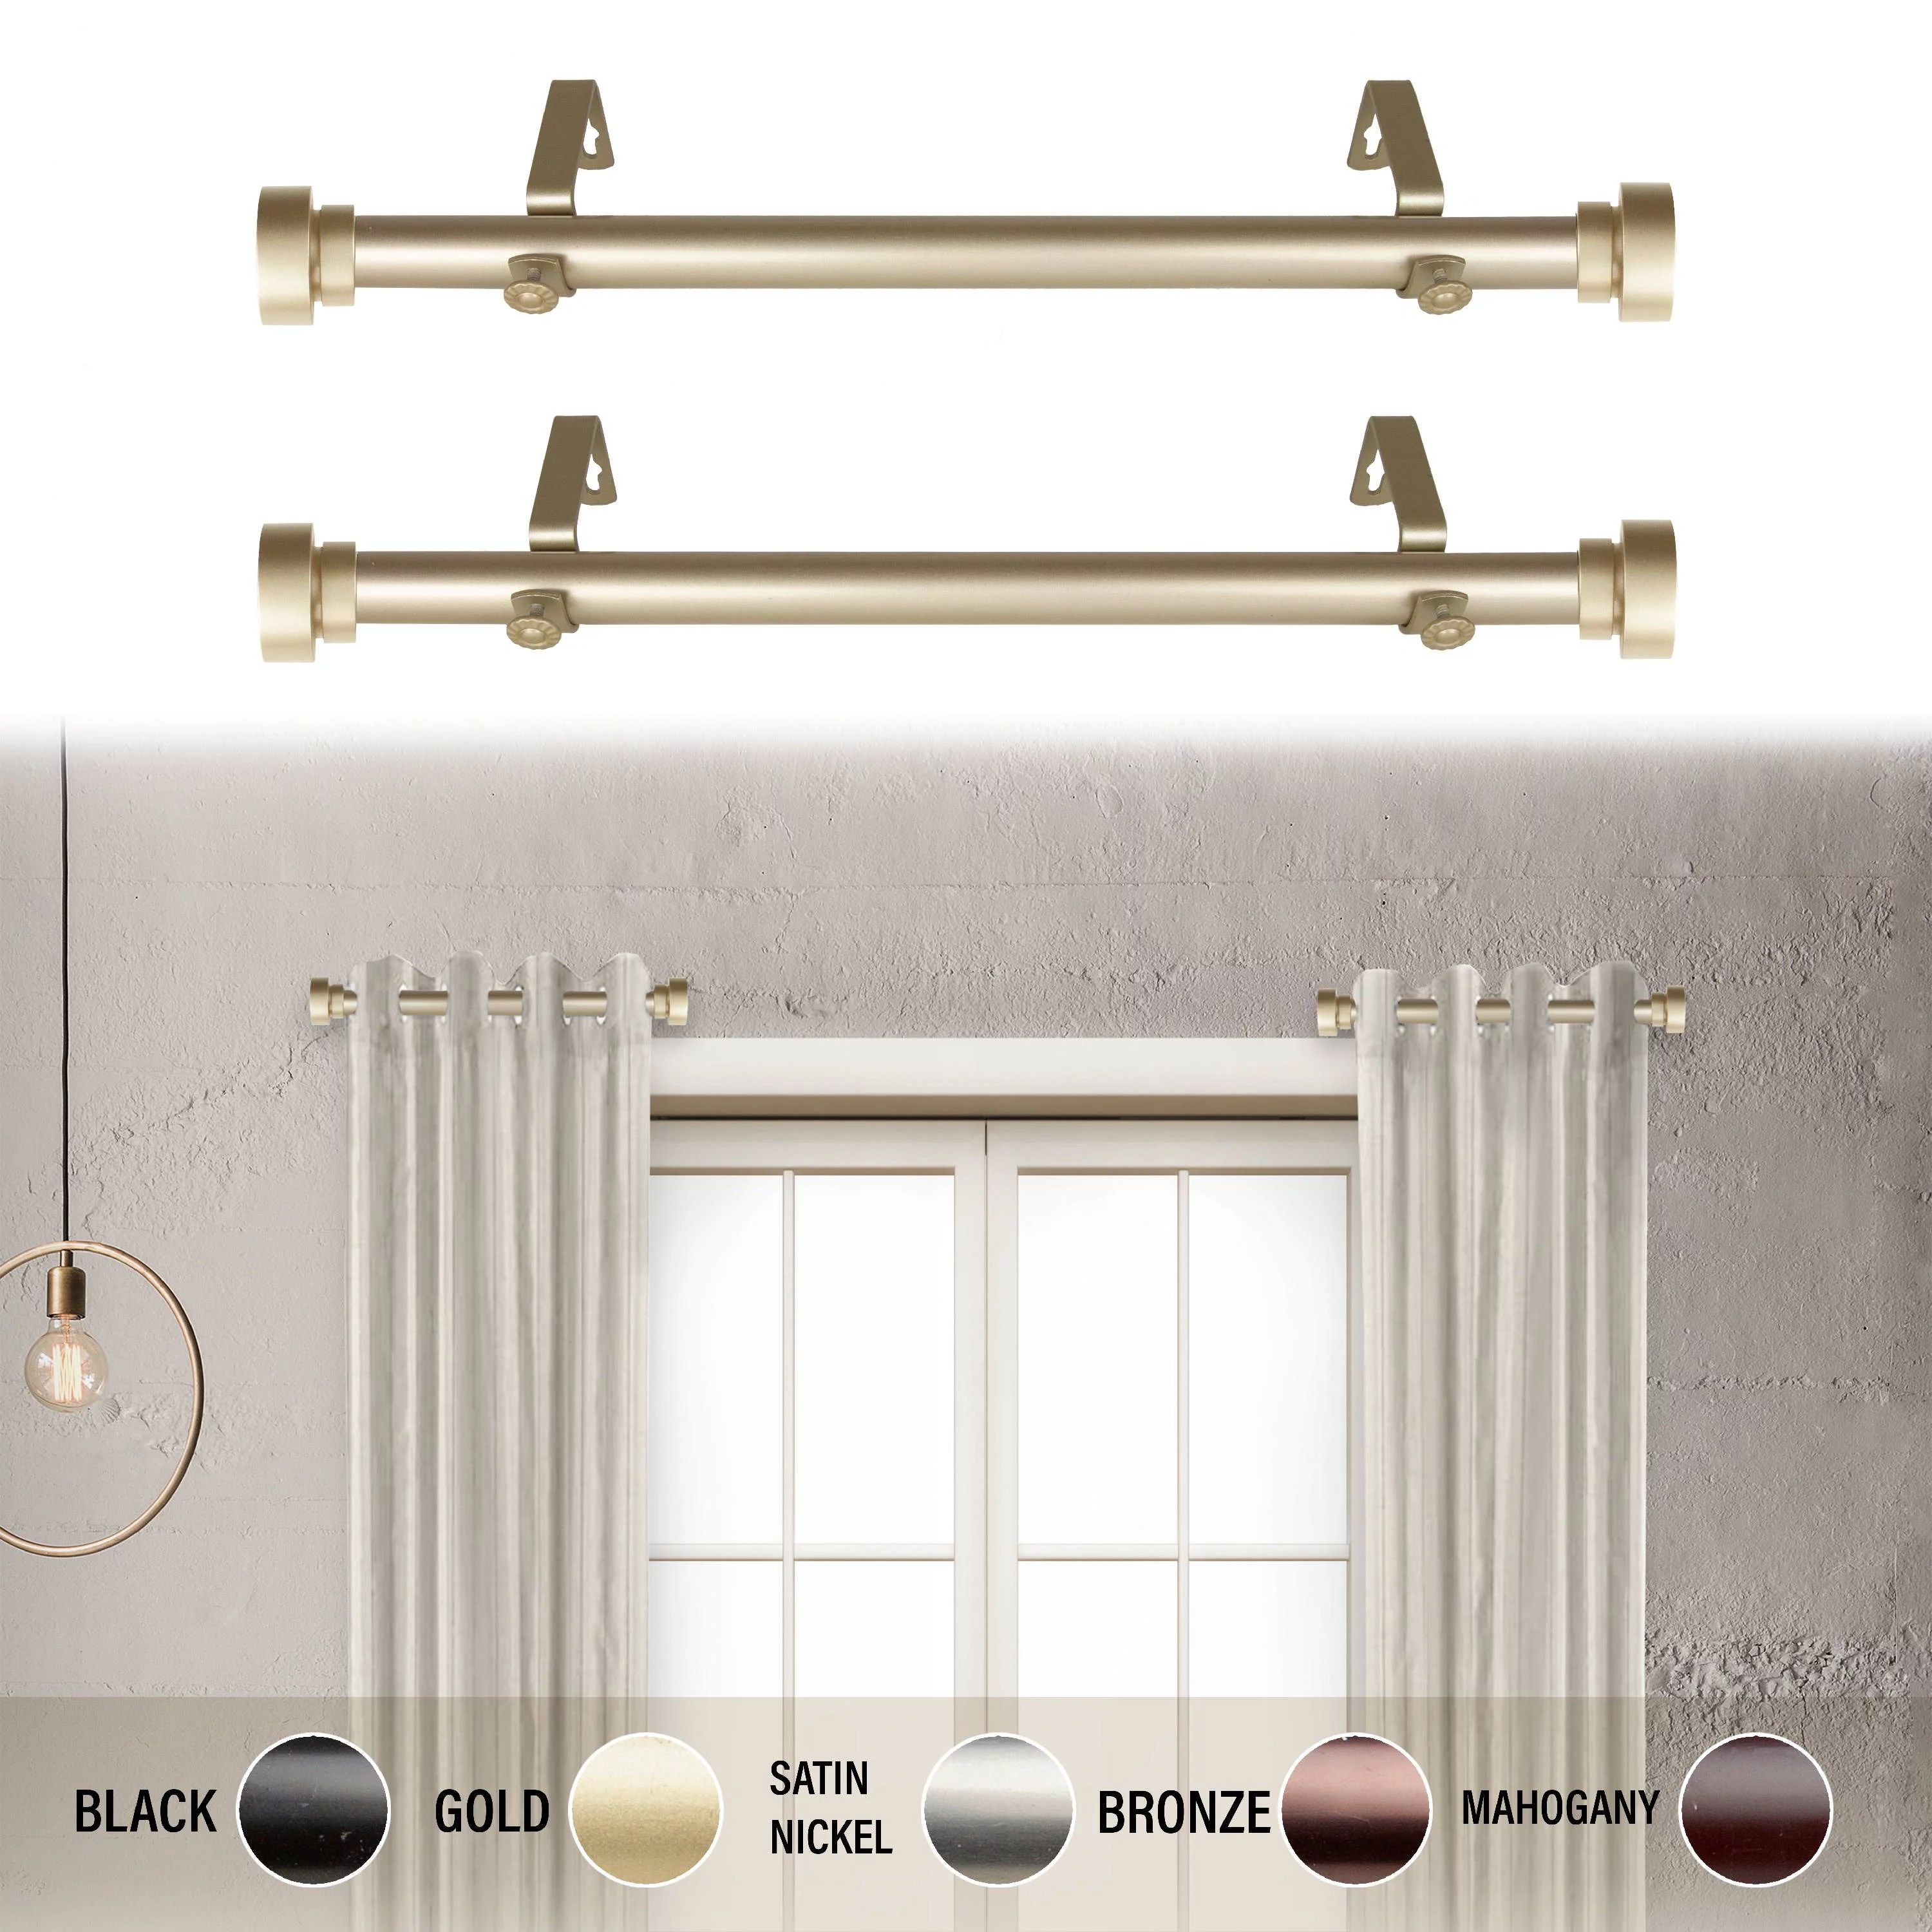 1 dia side curtain rod 12 20 inch long set of 2 gold